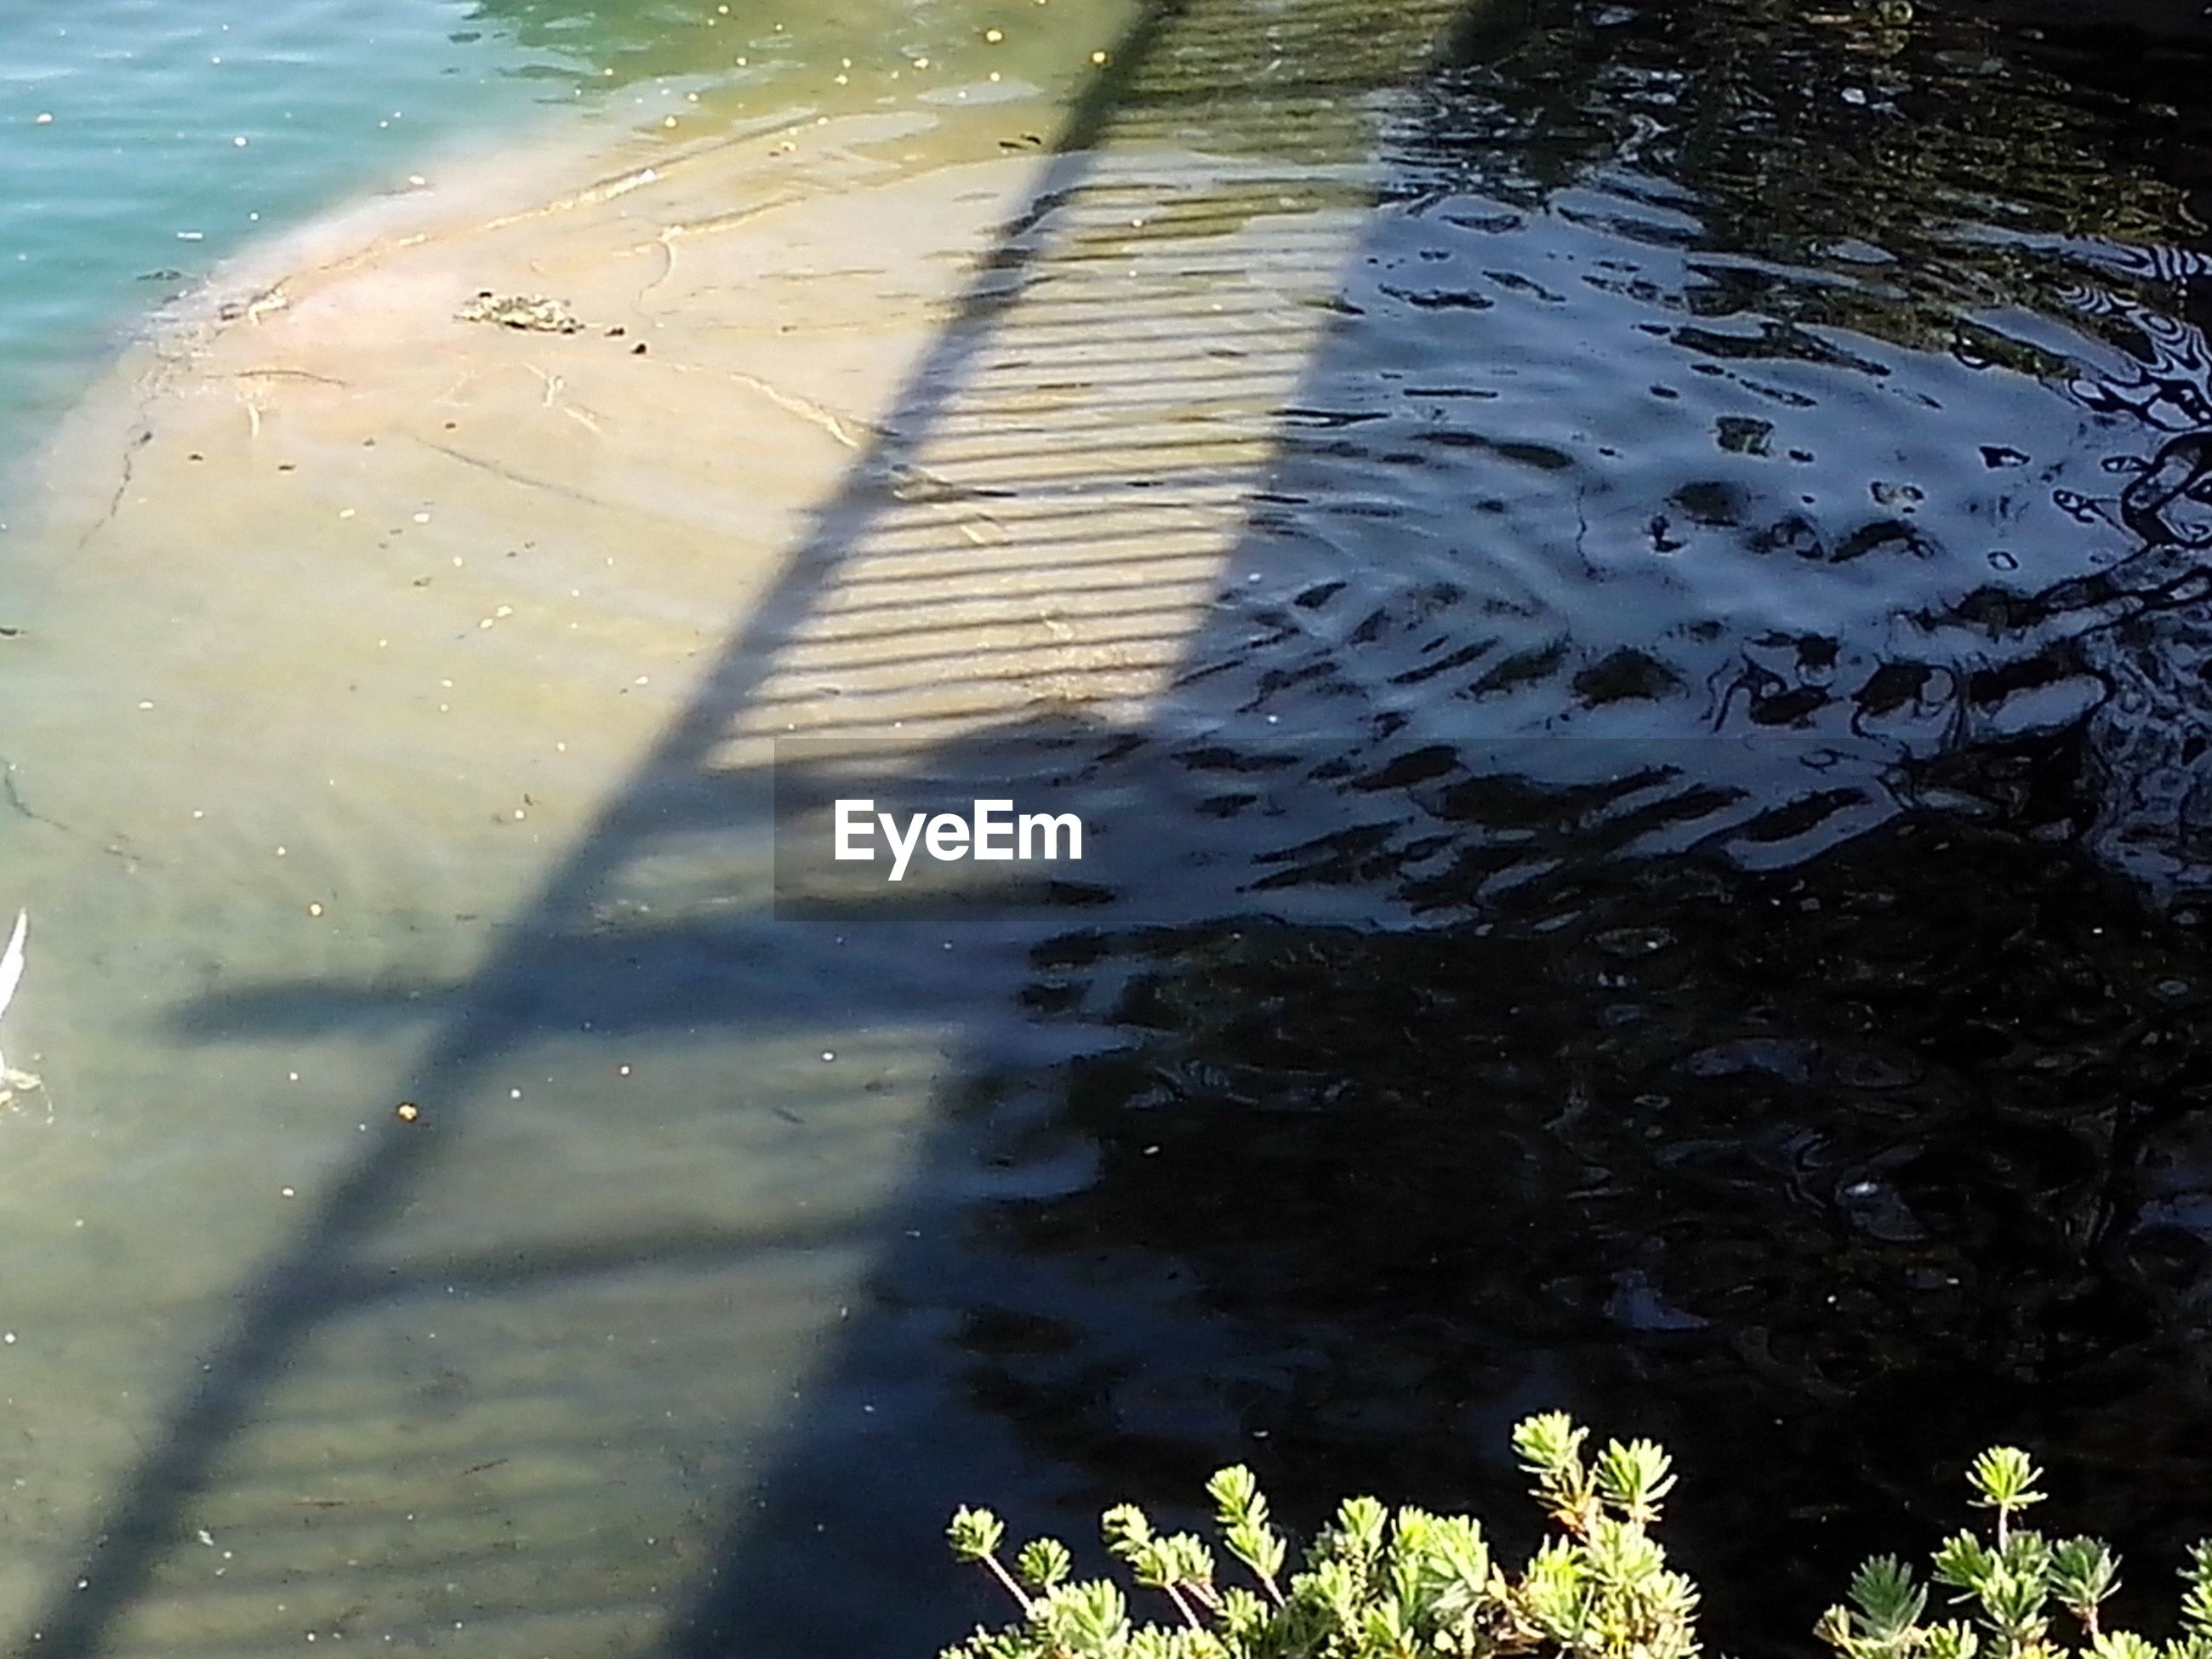 Shadow of bridge and railing reflecting in water